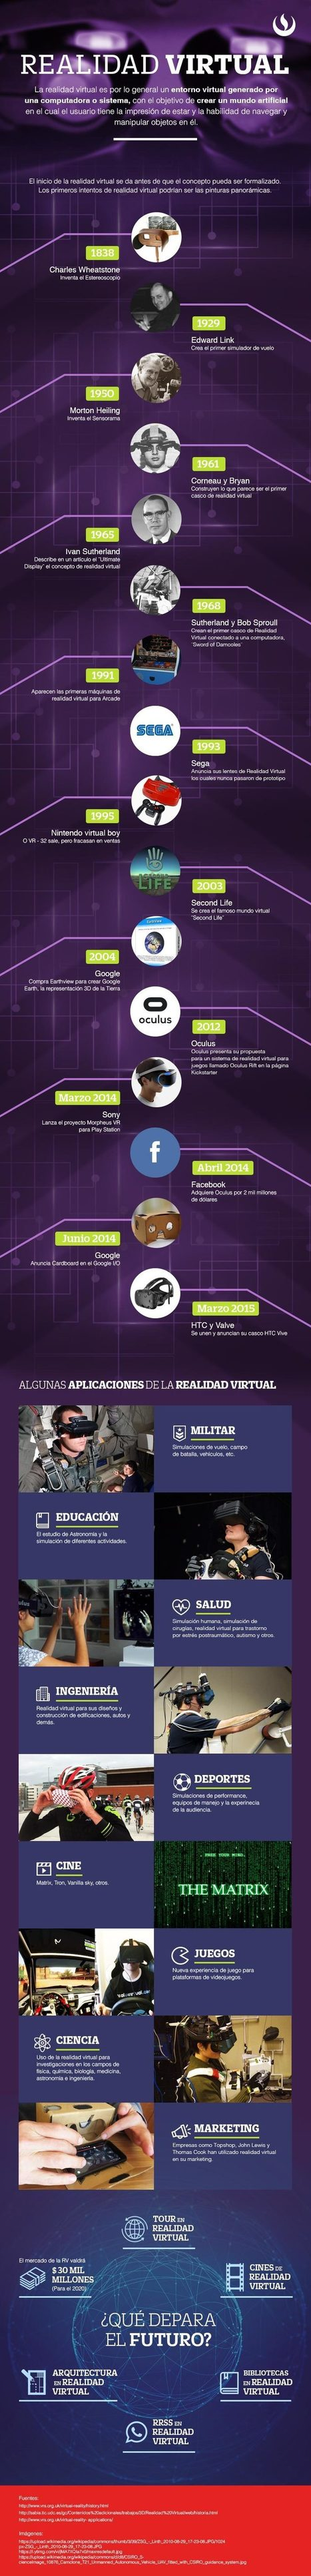 Realidad virtual  | REALIDAD AUMENTADA Y ENSEÑANZA 3.0 - AUGMENTED REALITY AND TEACHING 3.0 | Scoop.it